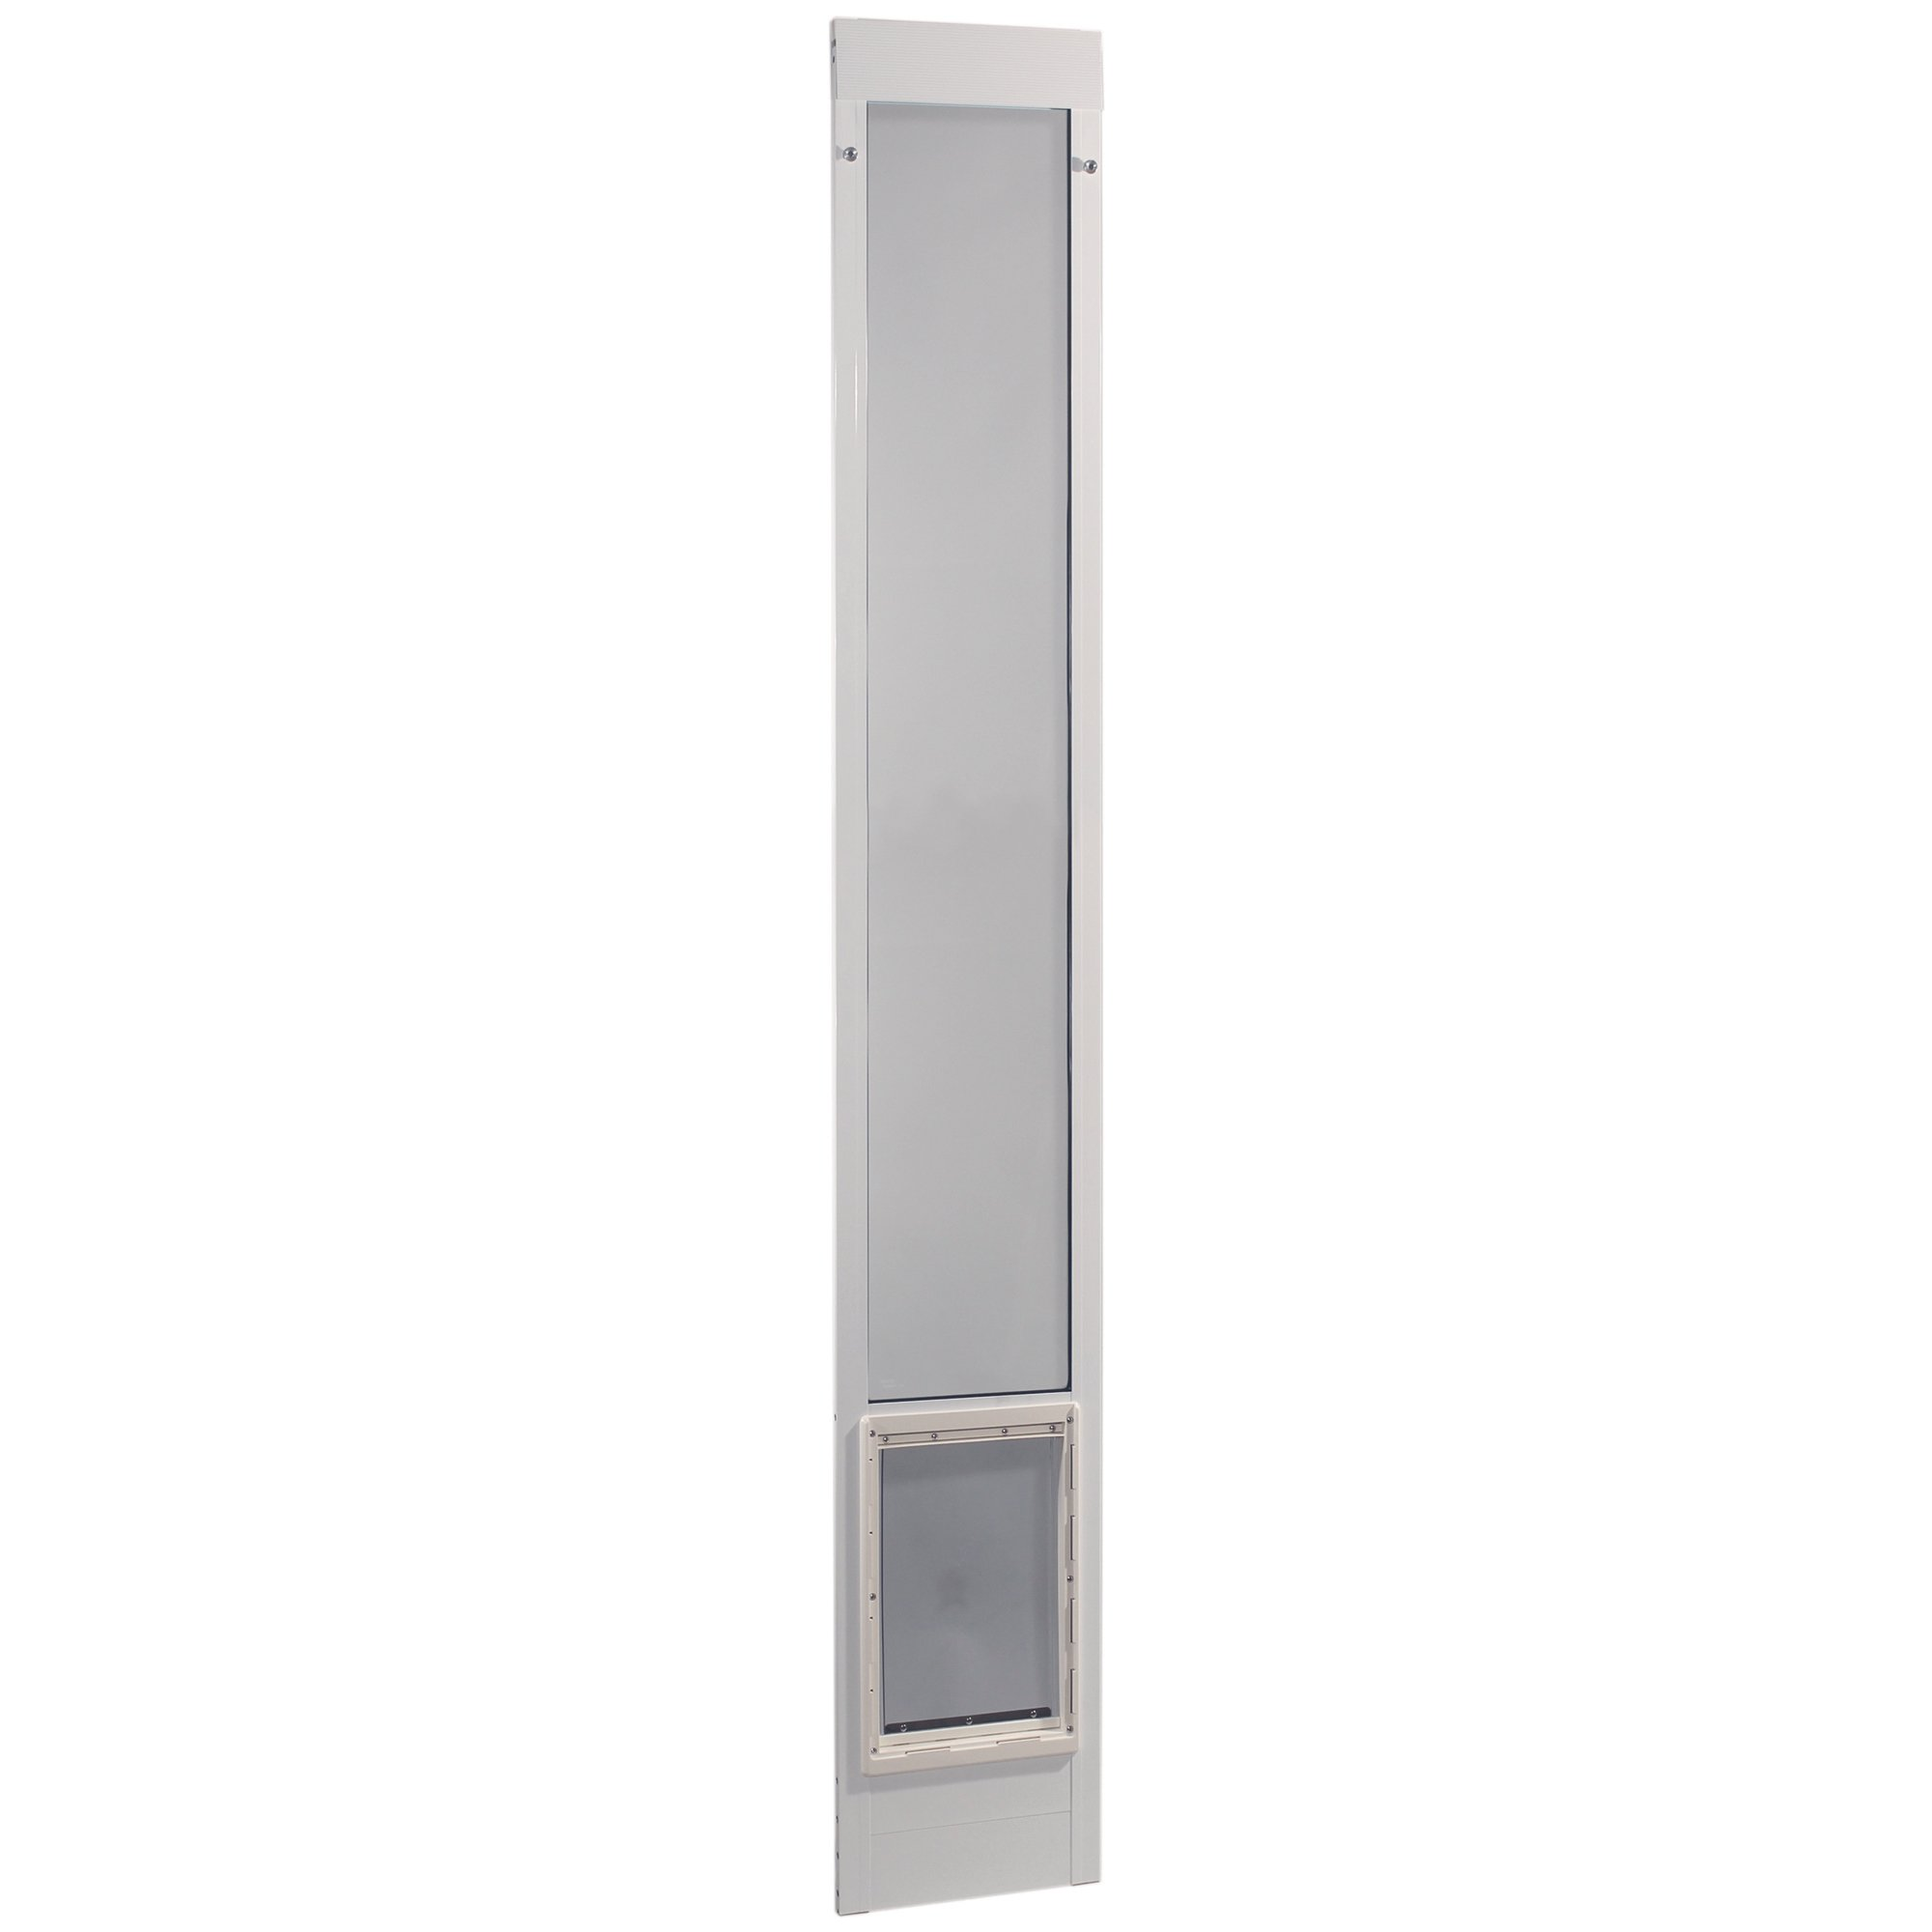 Ideal Pet Products 96'' Fast Fit Aluminum Pet Patio Door, Extra Large, 10.5'' x 15'' Flap Size, White